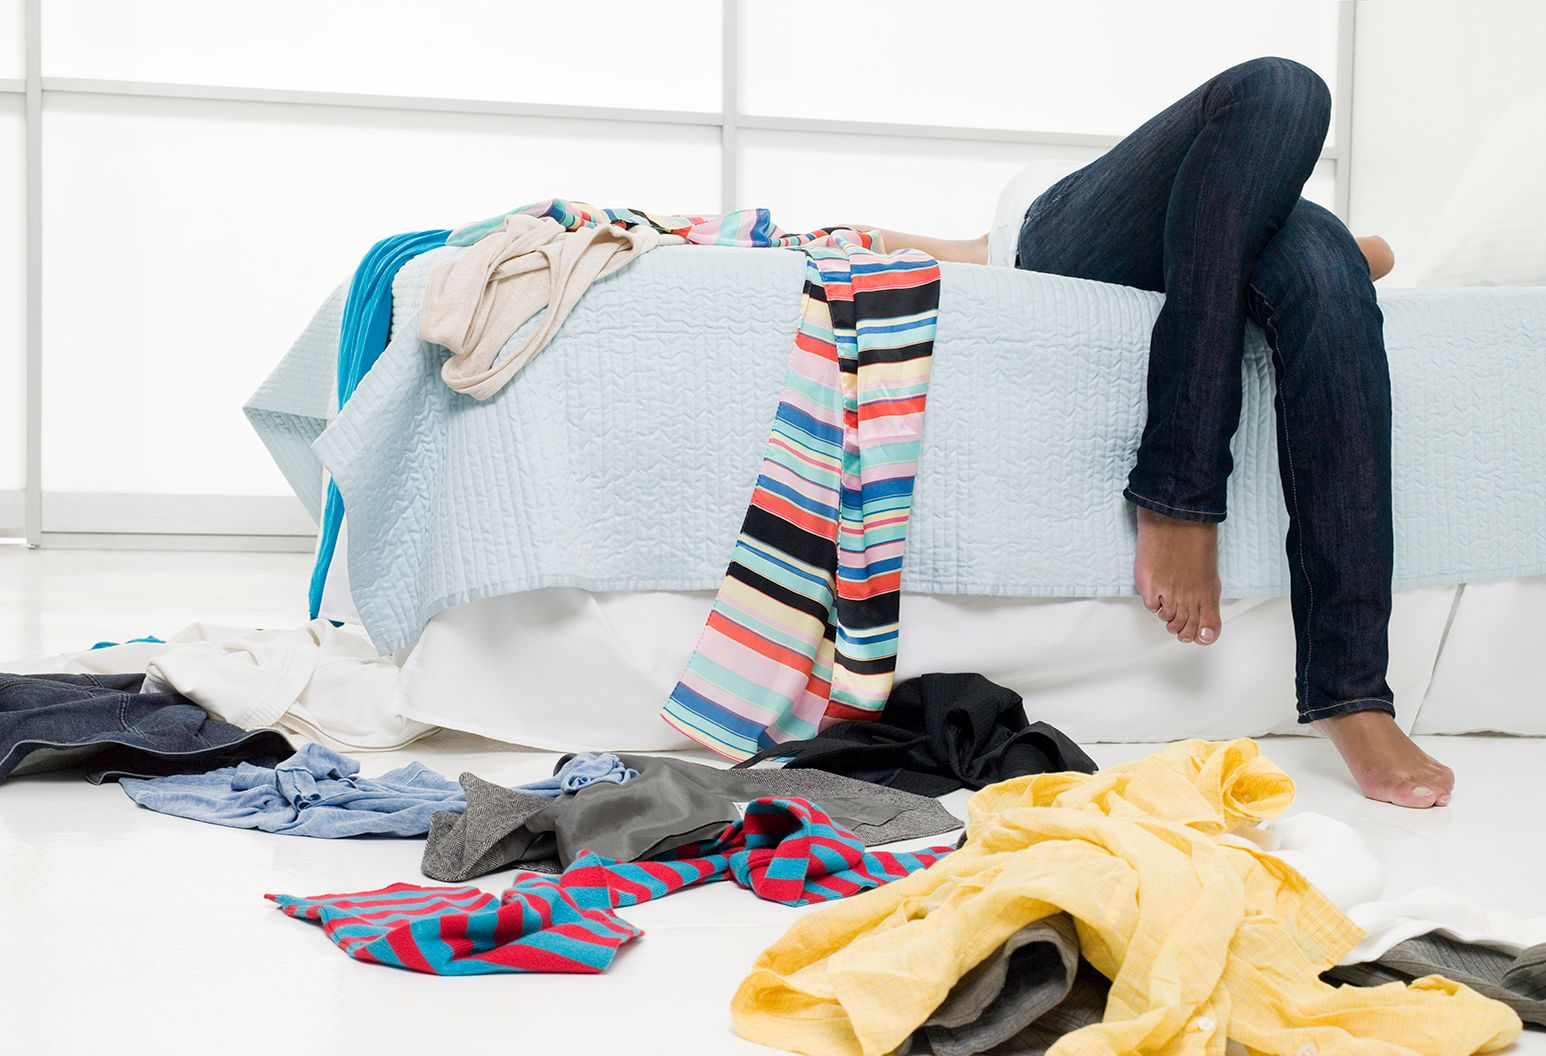 Two legs dangle over the edge of a white bed with a light blue comforter. There are colorful clothes everywhere strewn about the bed and floor.